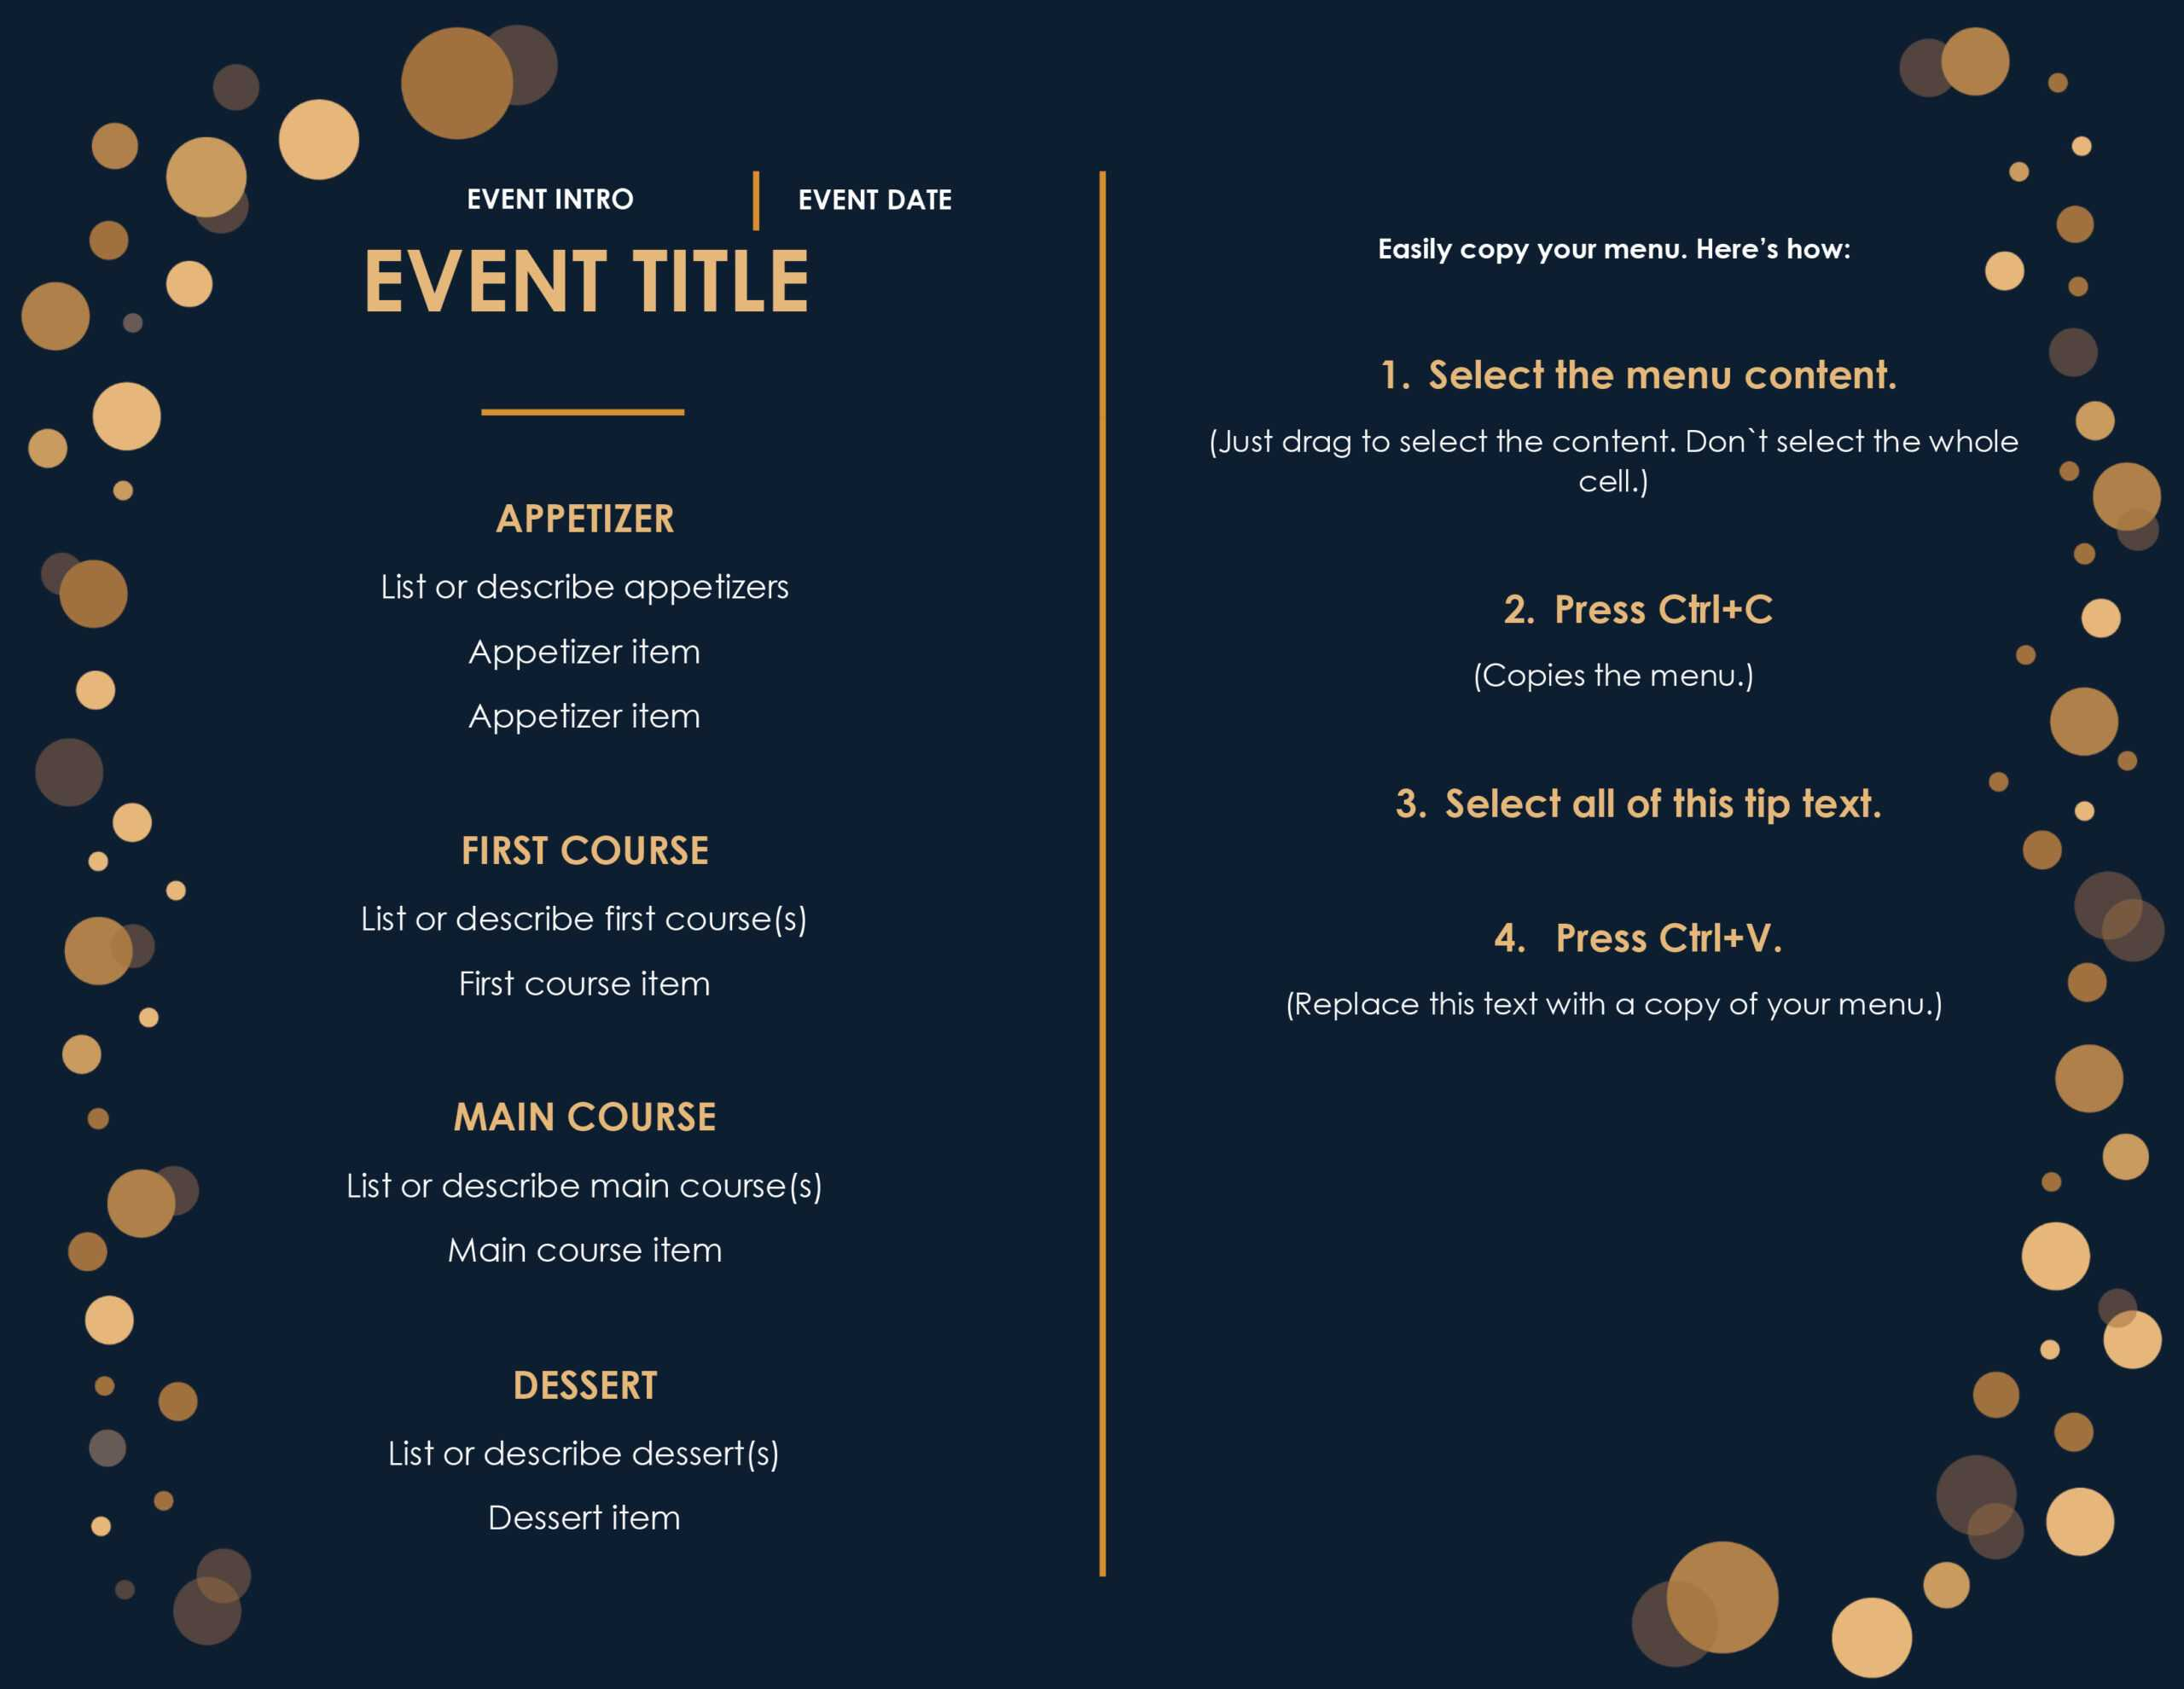 32 Free Simple Menu Templates For Restaurants, Cafes, And With Editable Menu Templates Free